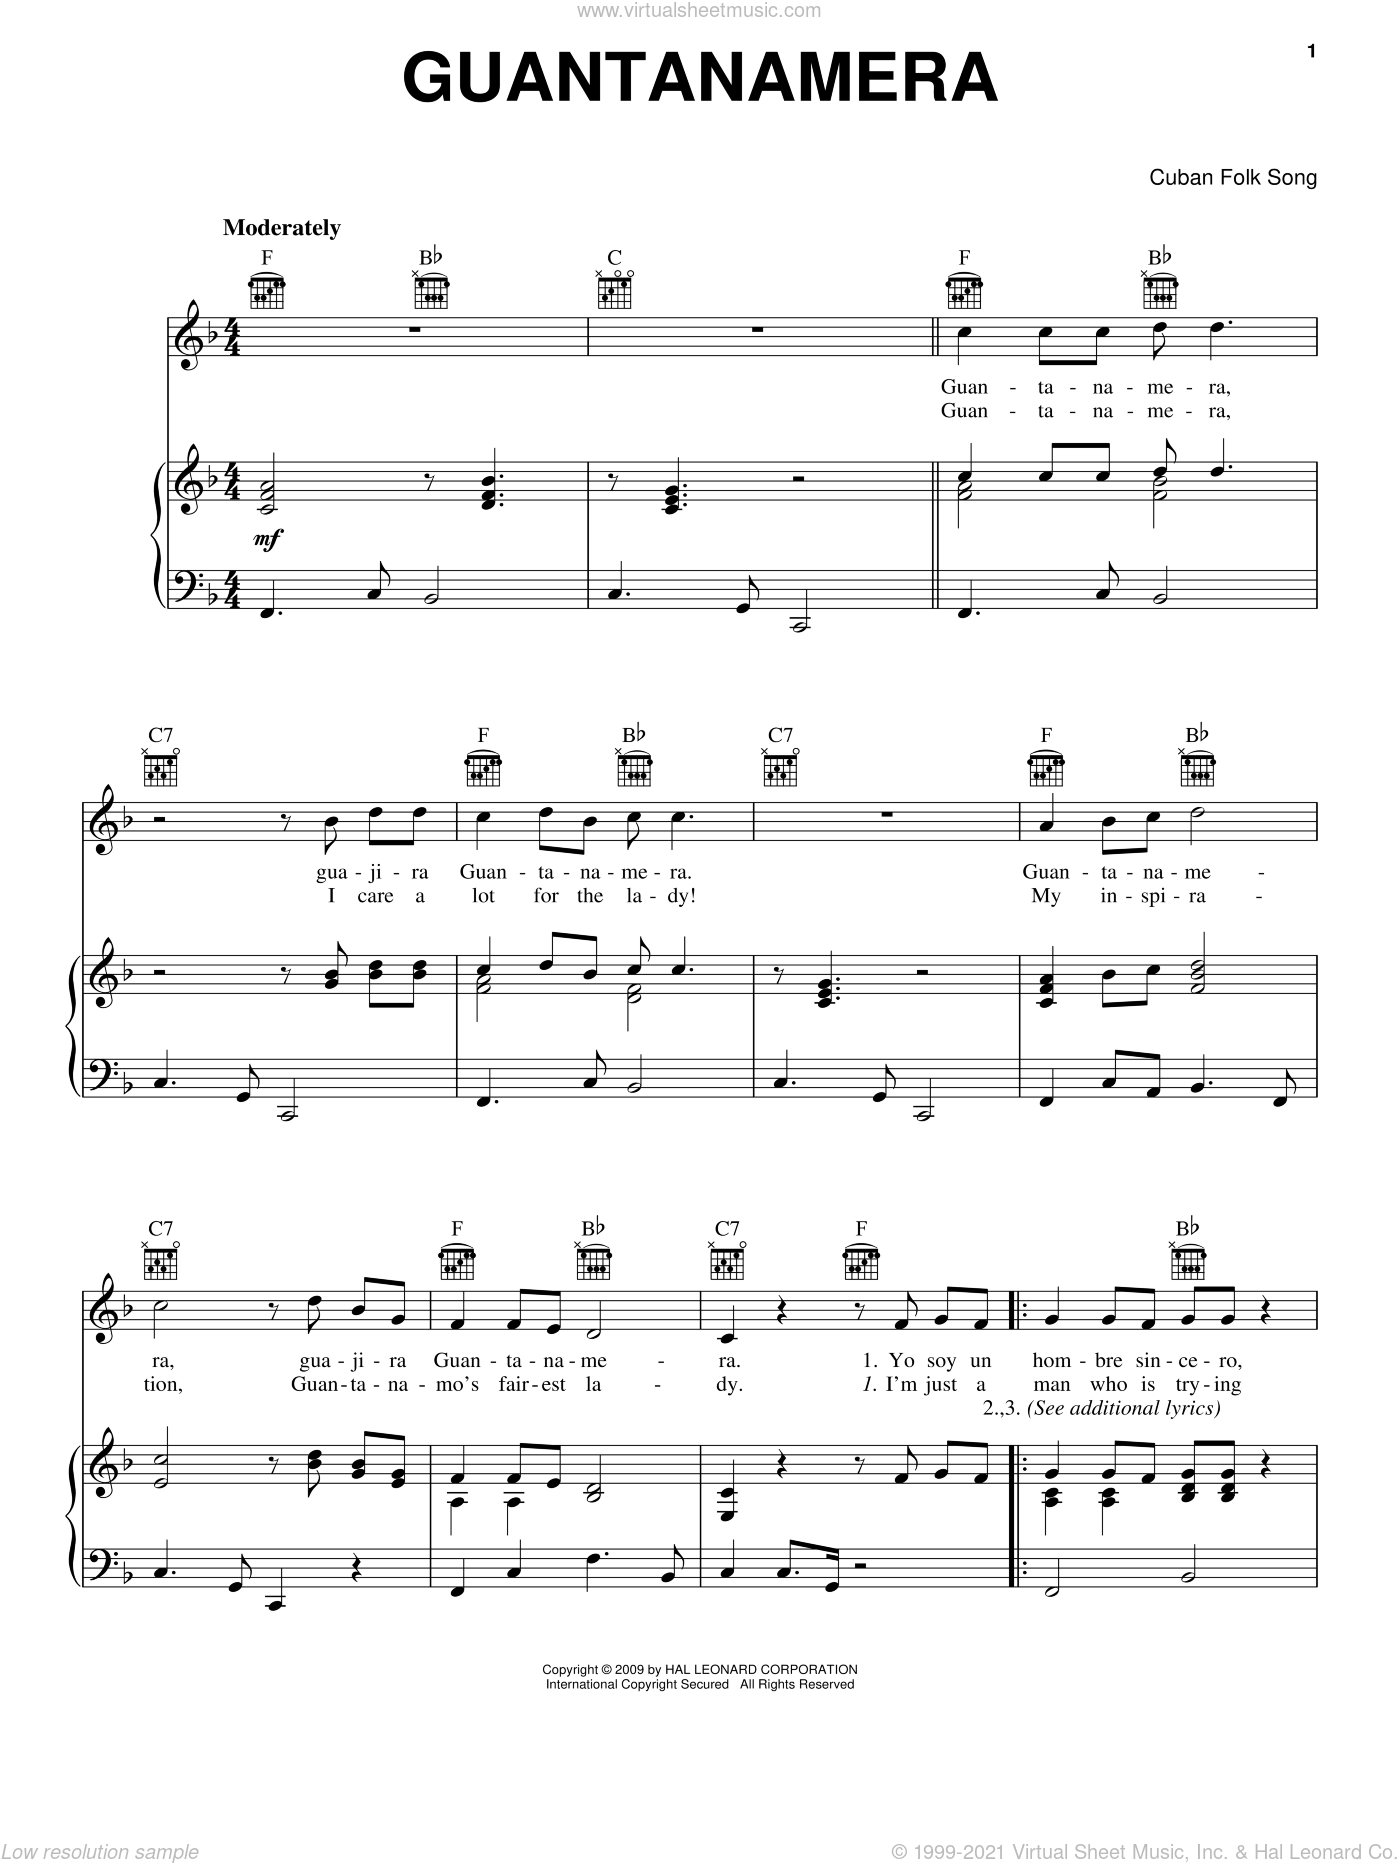 Guantanamera sheet music for voice, piano or guitar